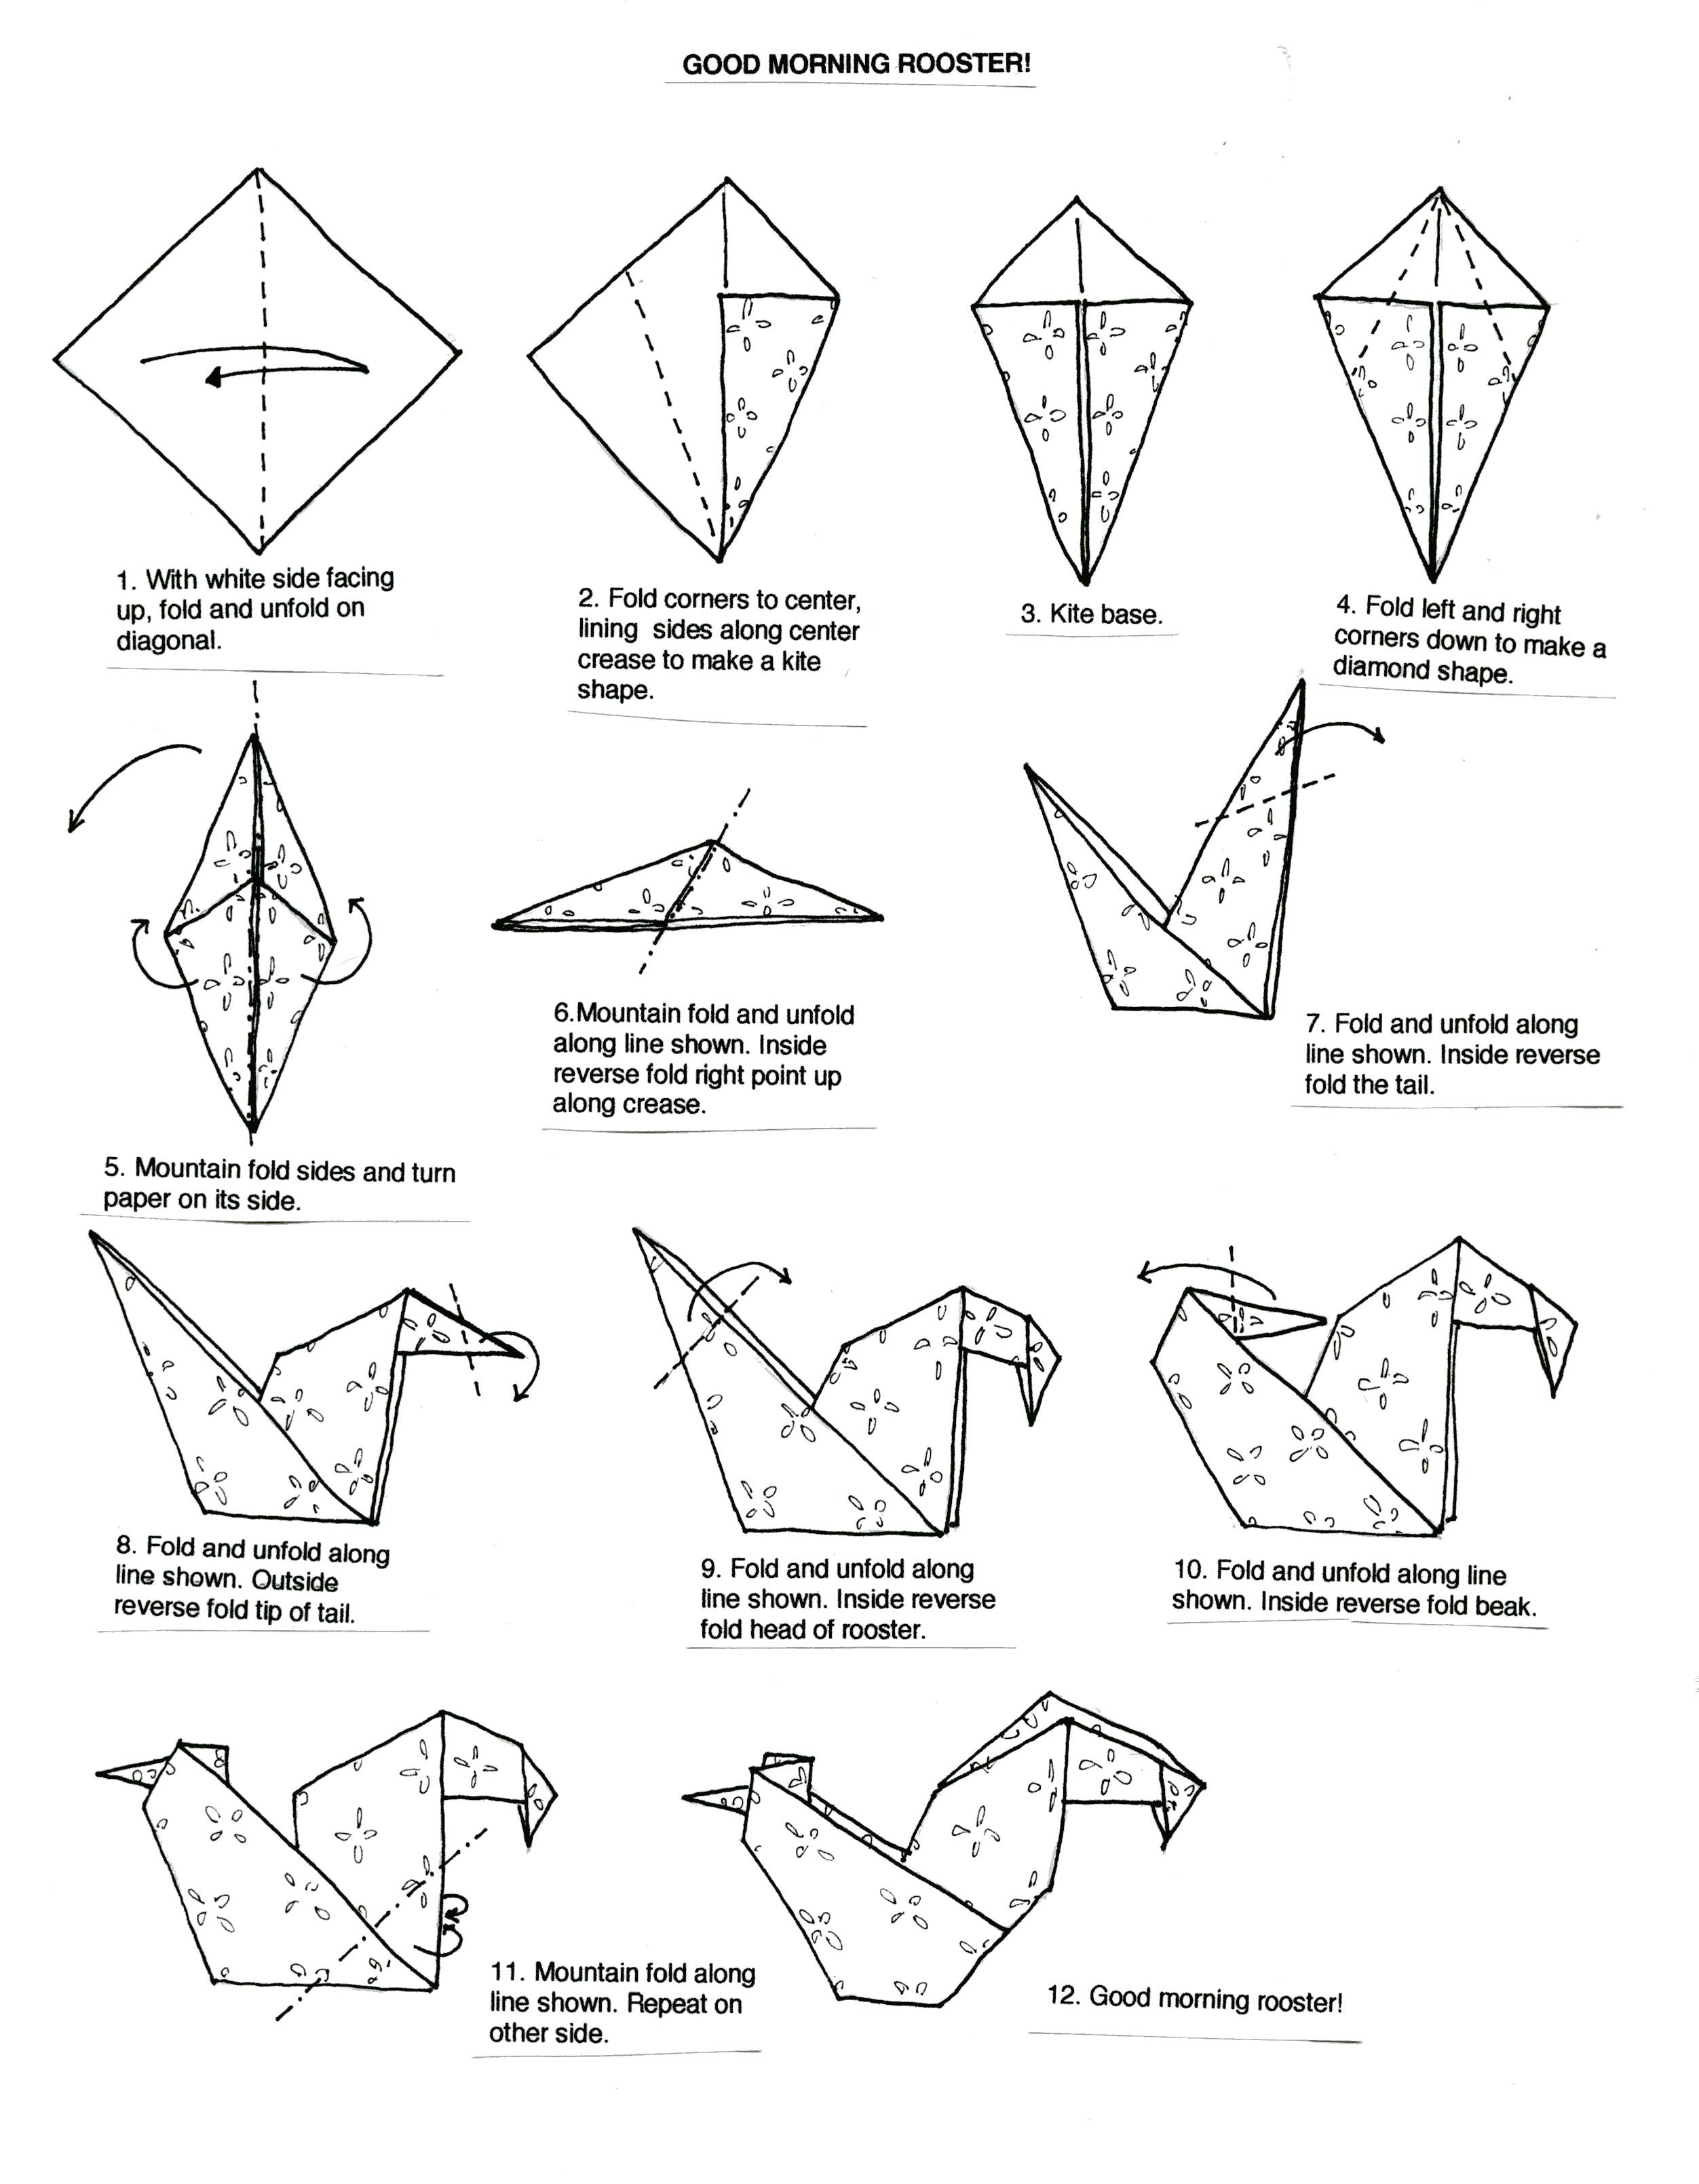 With 12 graphics and illustrations, the 12 basic steps needed to fold an origami rooster